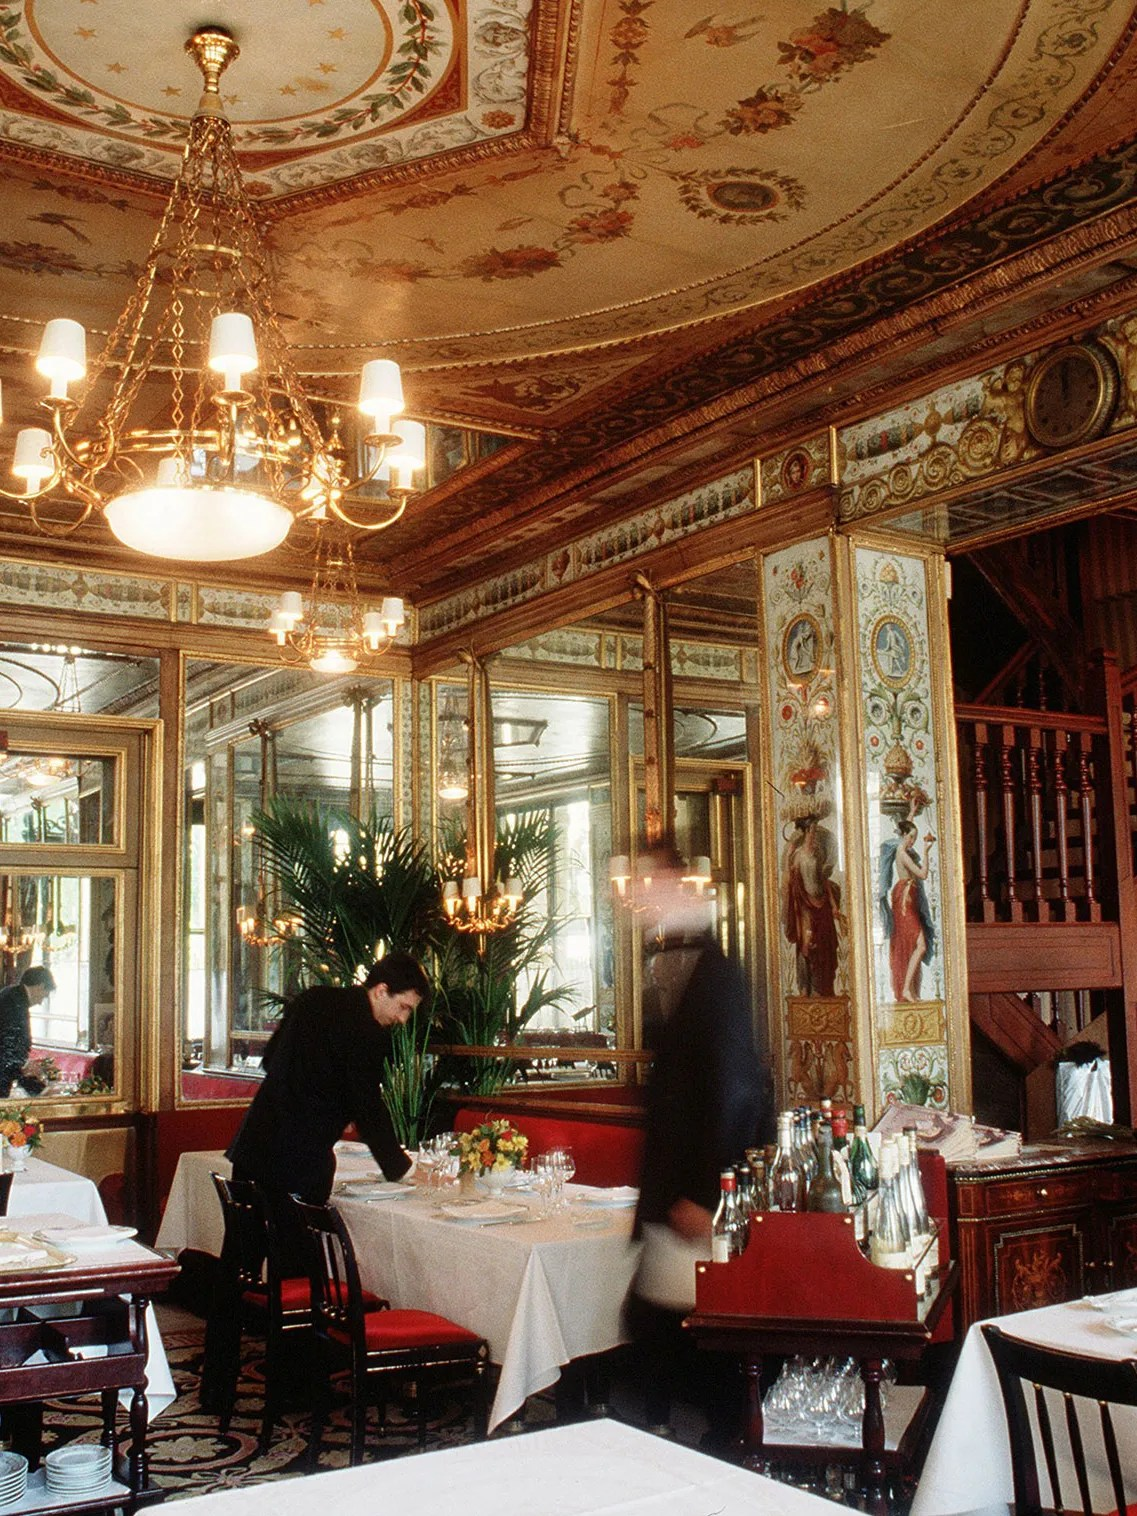 Restaurant Design Paris 6 Of The Most Historic Restaurants In Paris Architectural Digest